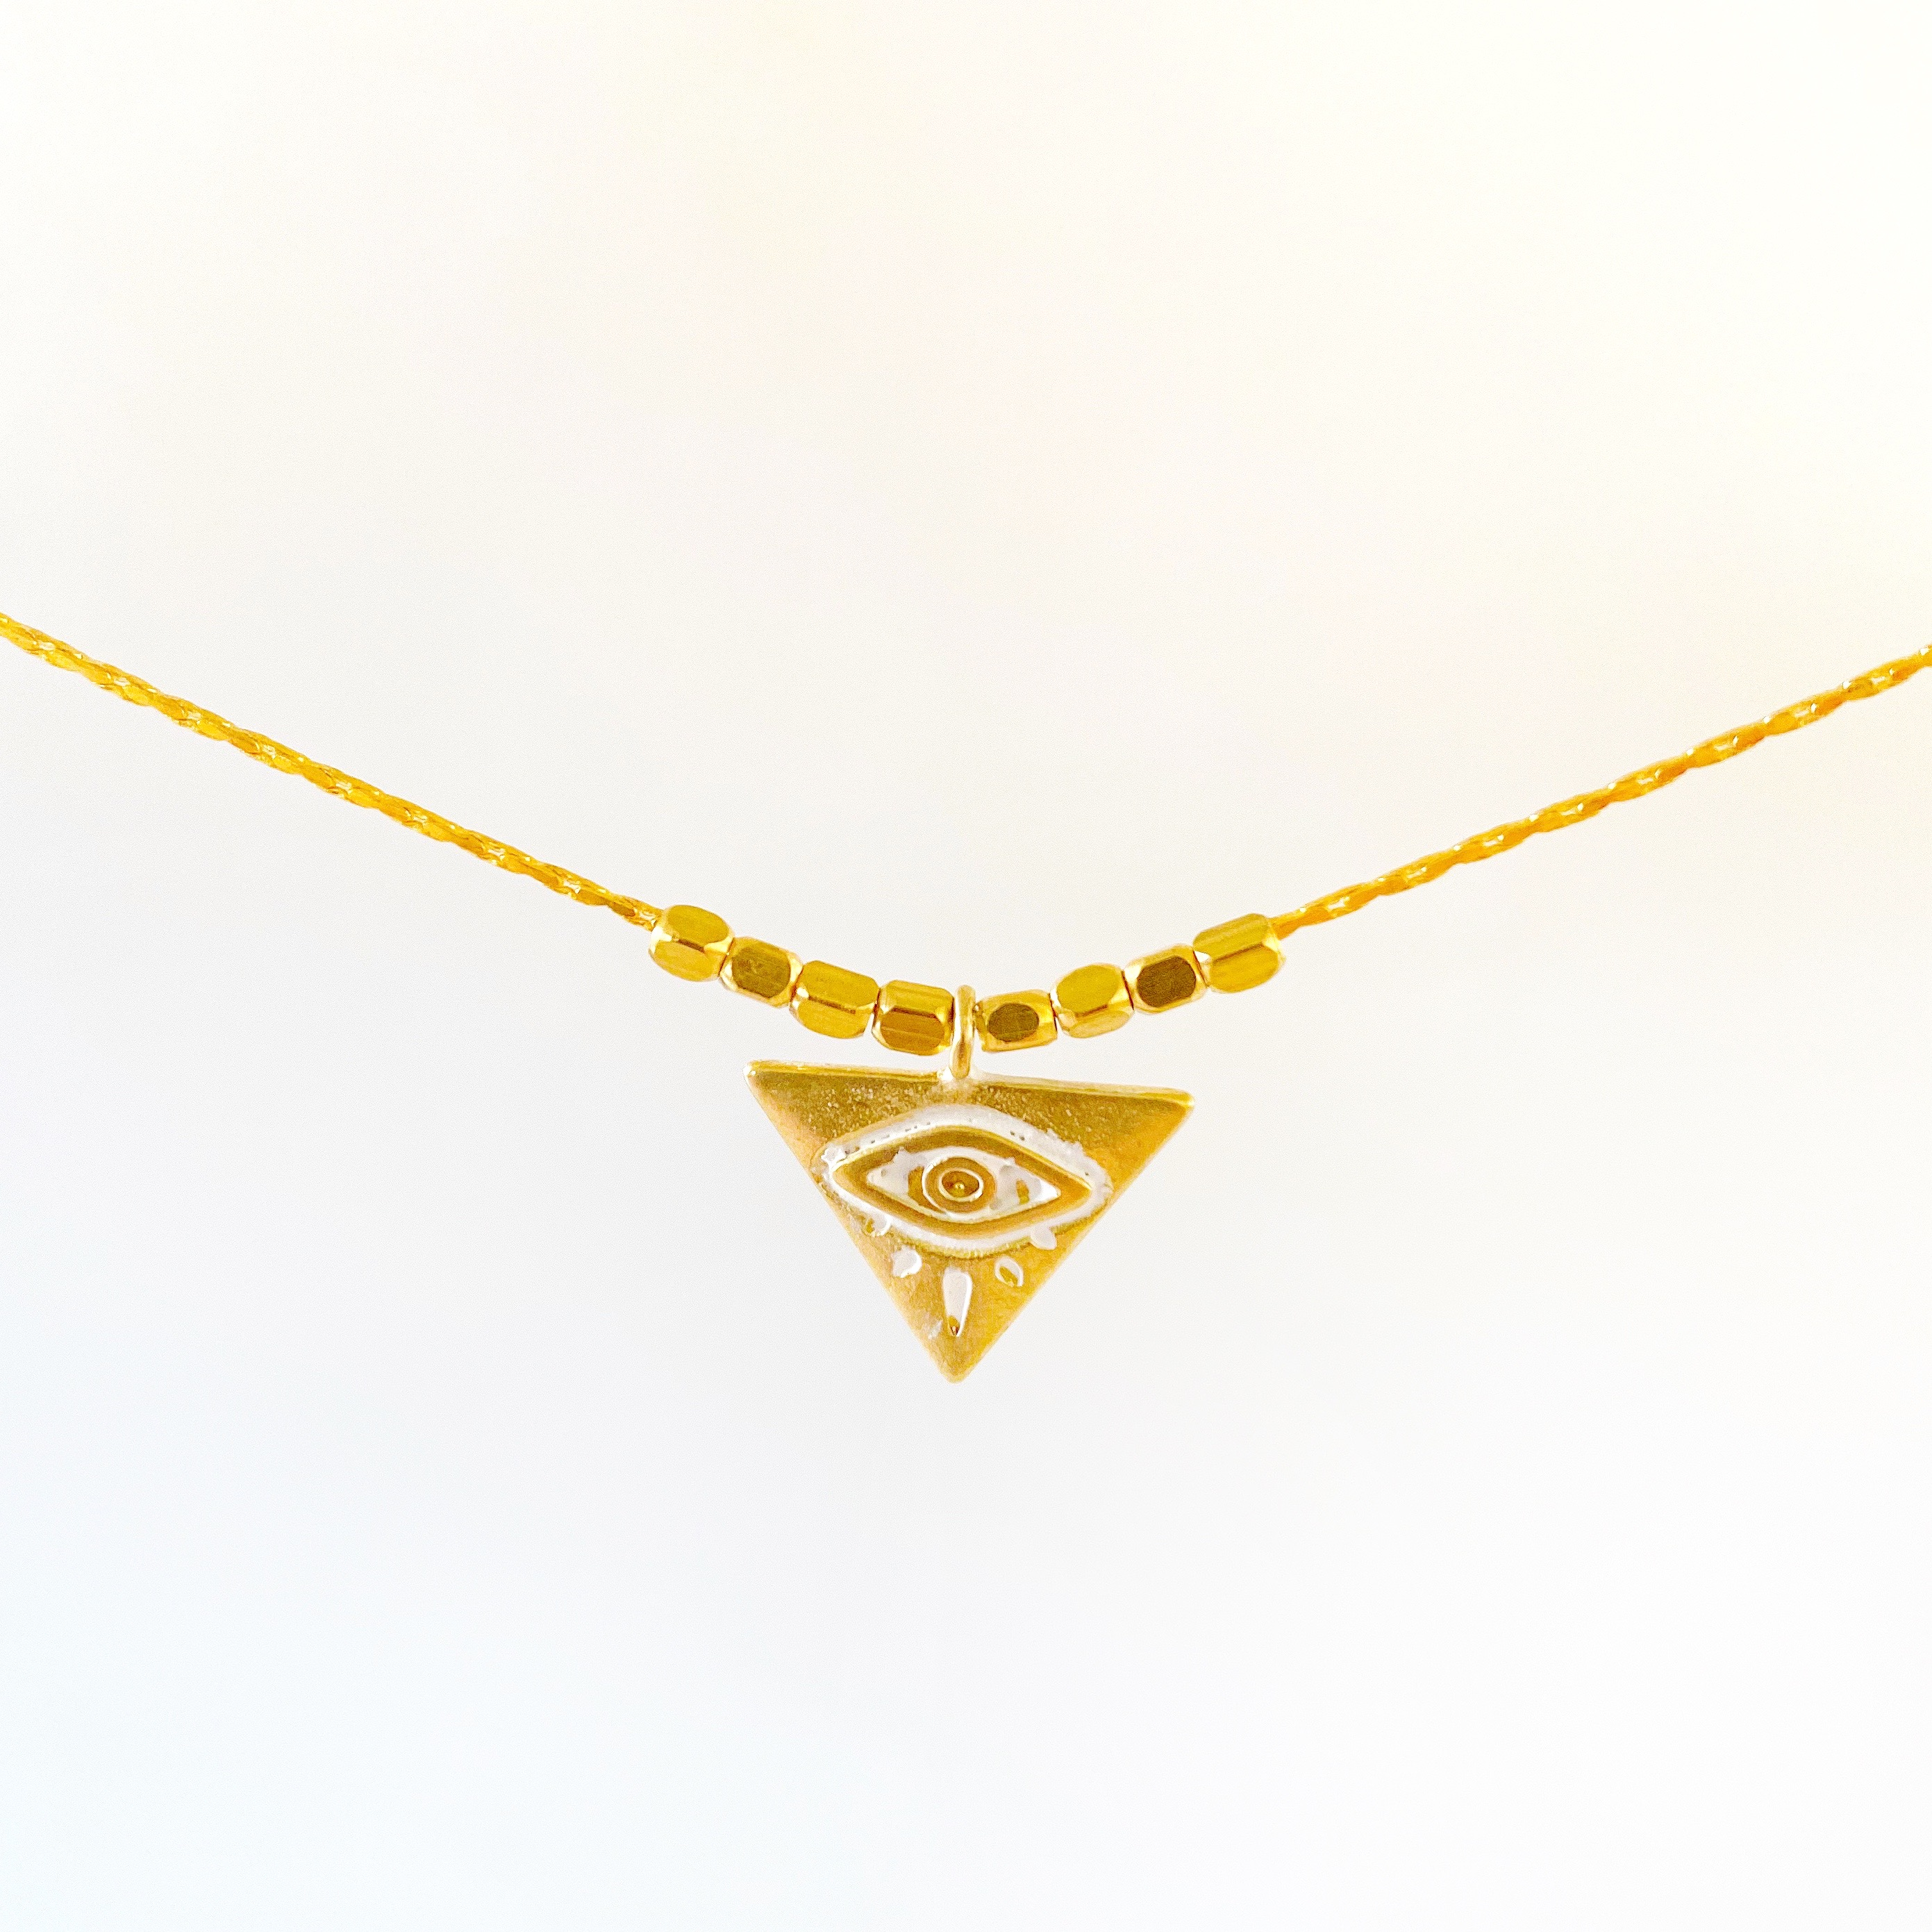 All-Seeing Eye Necklace